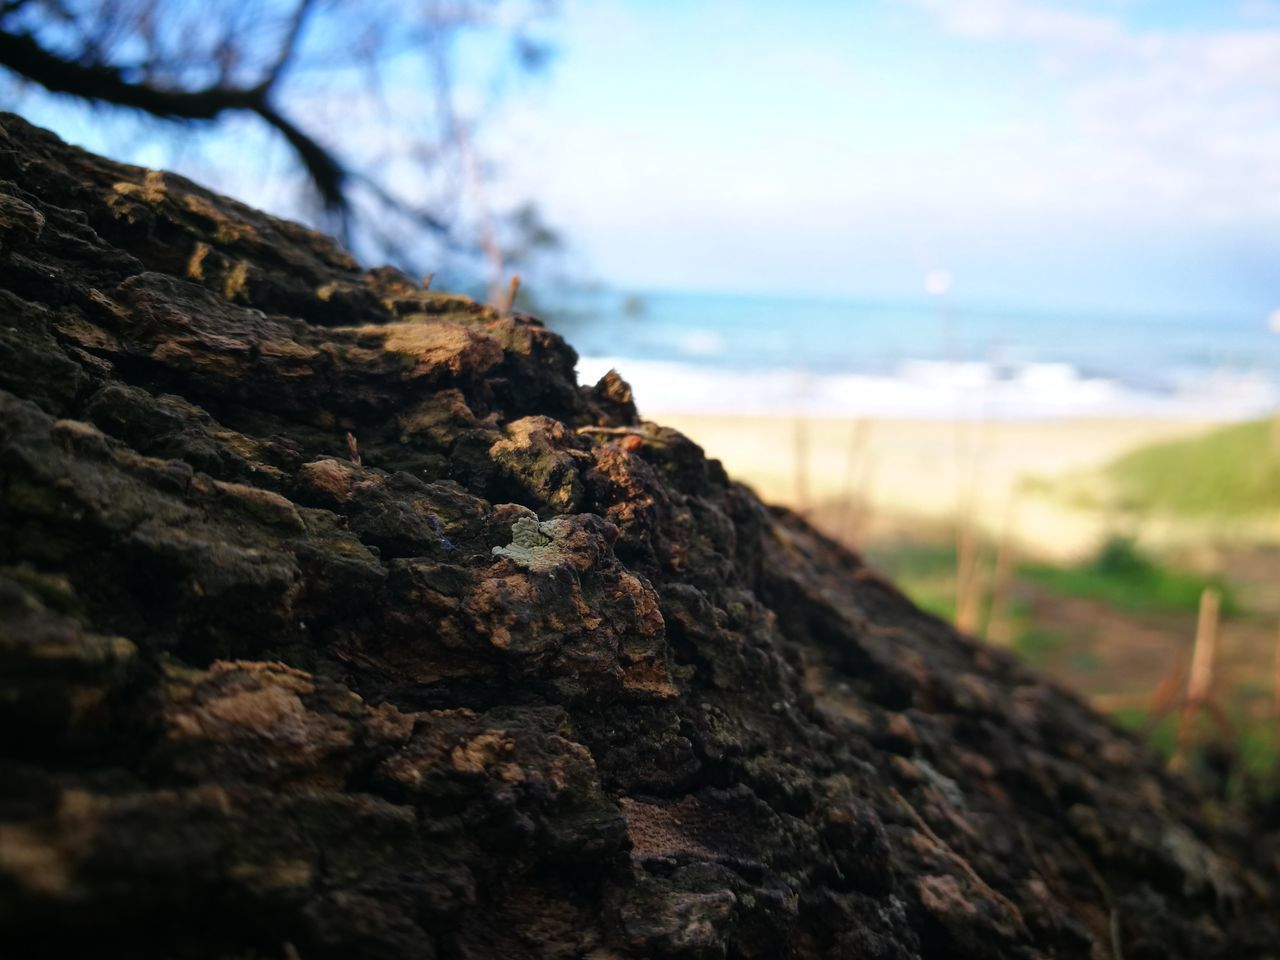 nature, rough, focus on foreground, rock - object, no people, tree, tree trunk, textured, day, moss, beauty in nature, outdoors, close-up, lichen, sky, sea